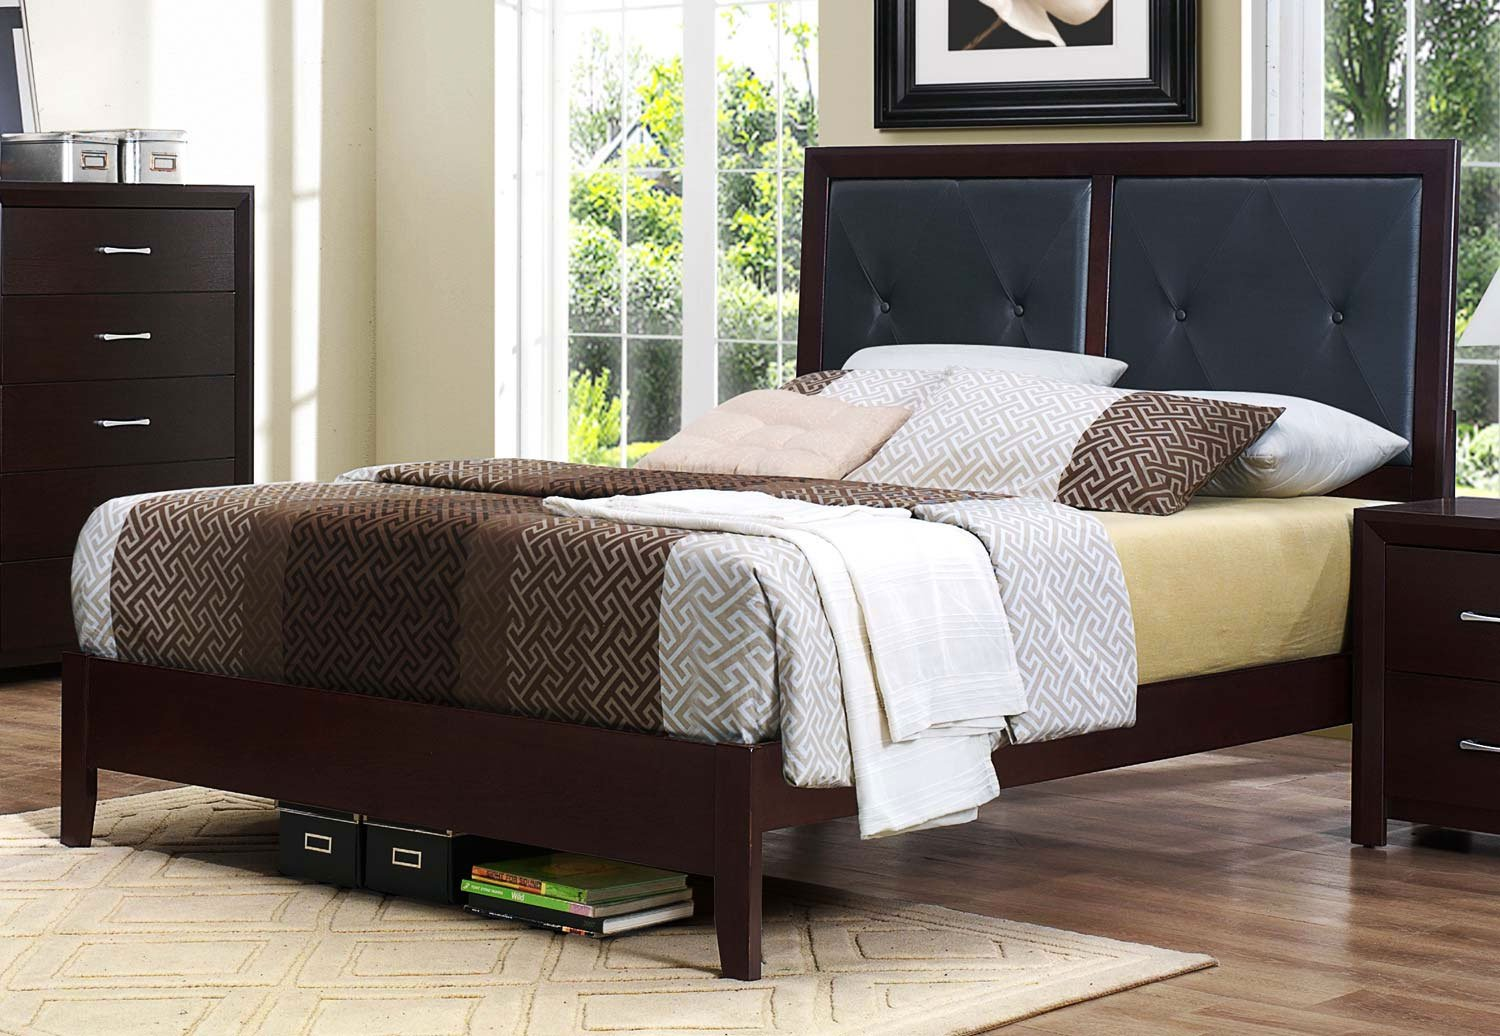 espresso & black contemporary queen size upholstered bed - edina | rc willey furniture store